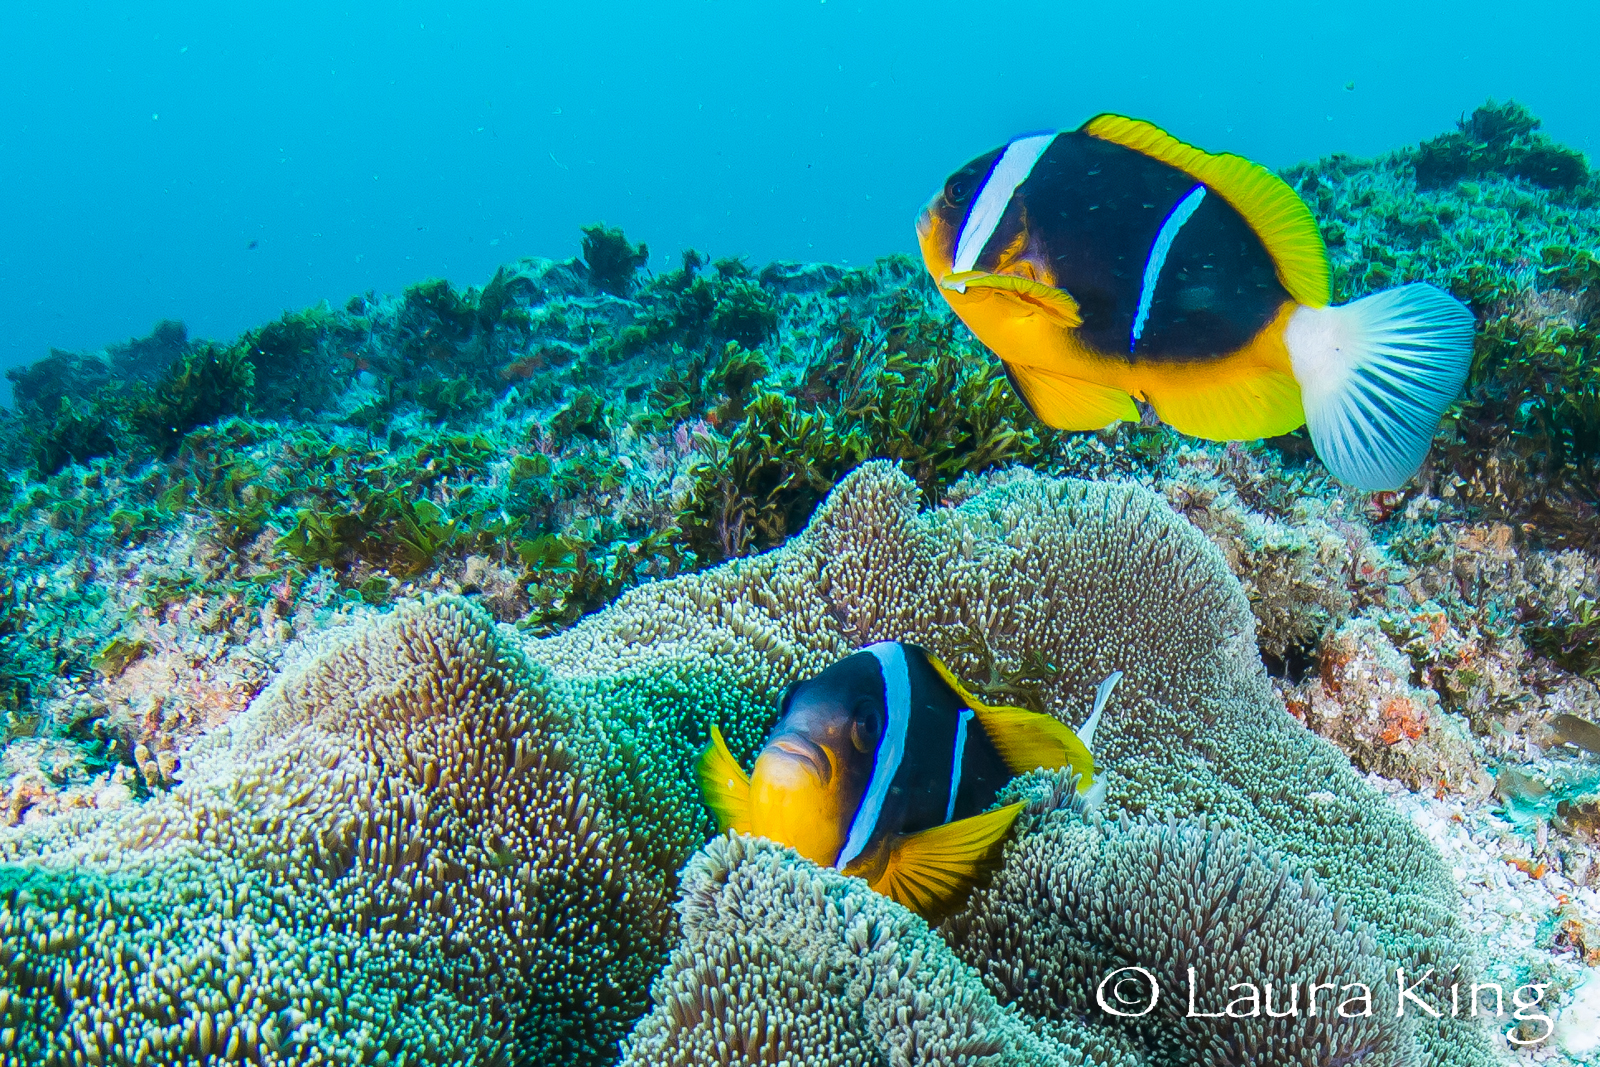 South Africa Scuba Diving Holiday in Umkomaas: 3 Night 5 Dive